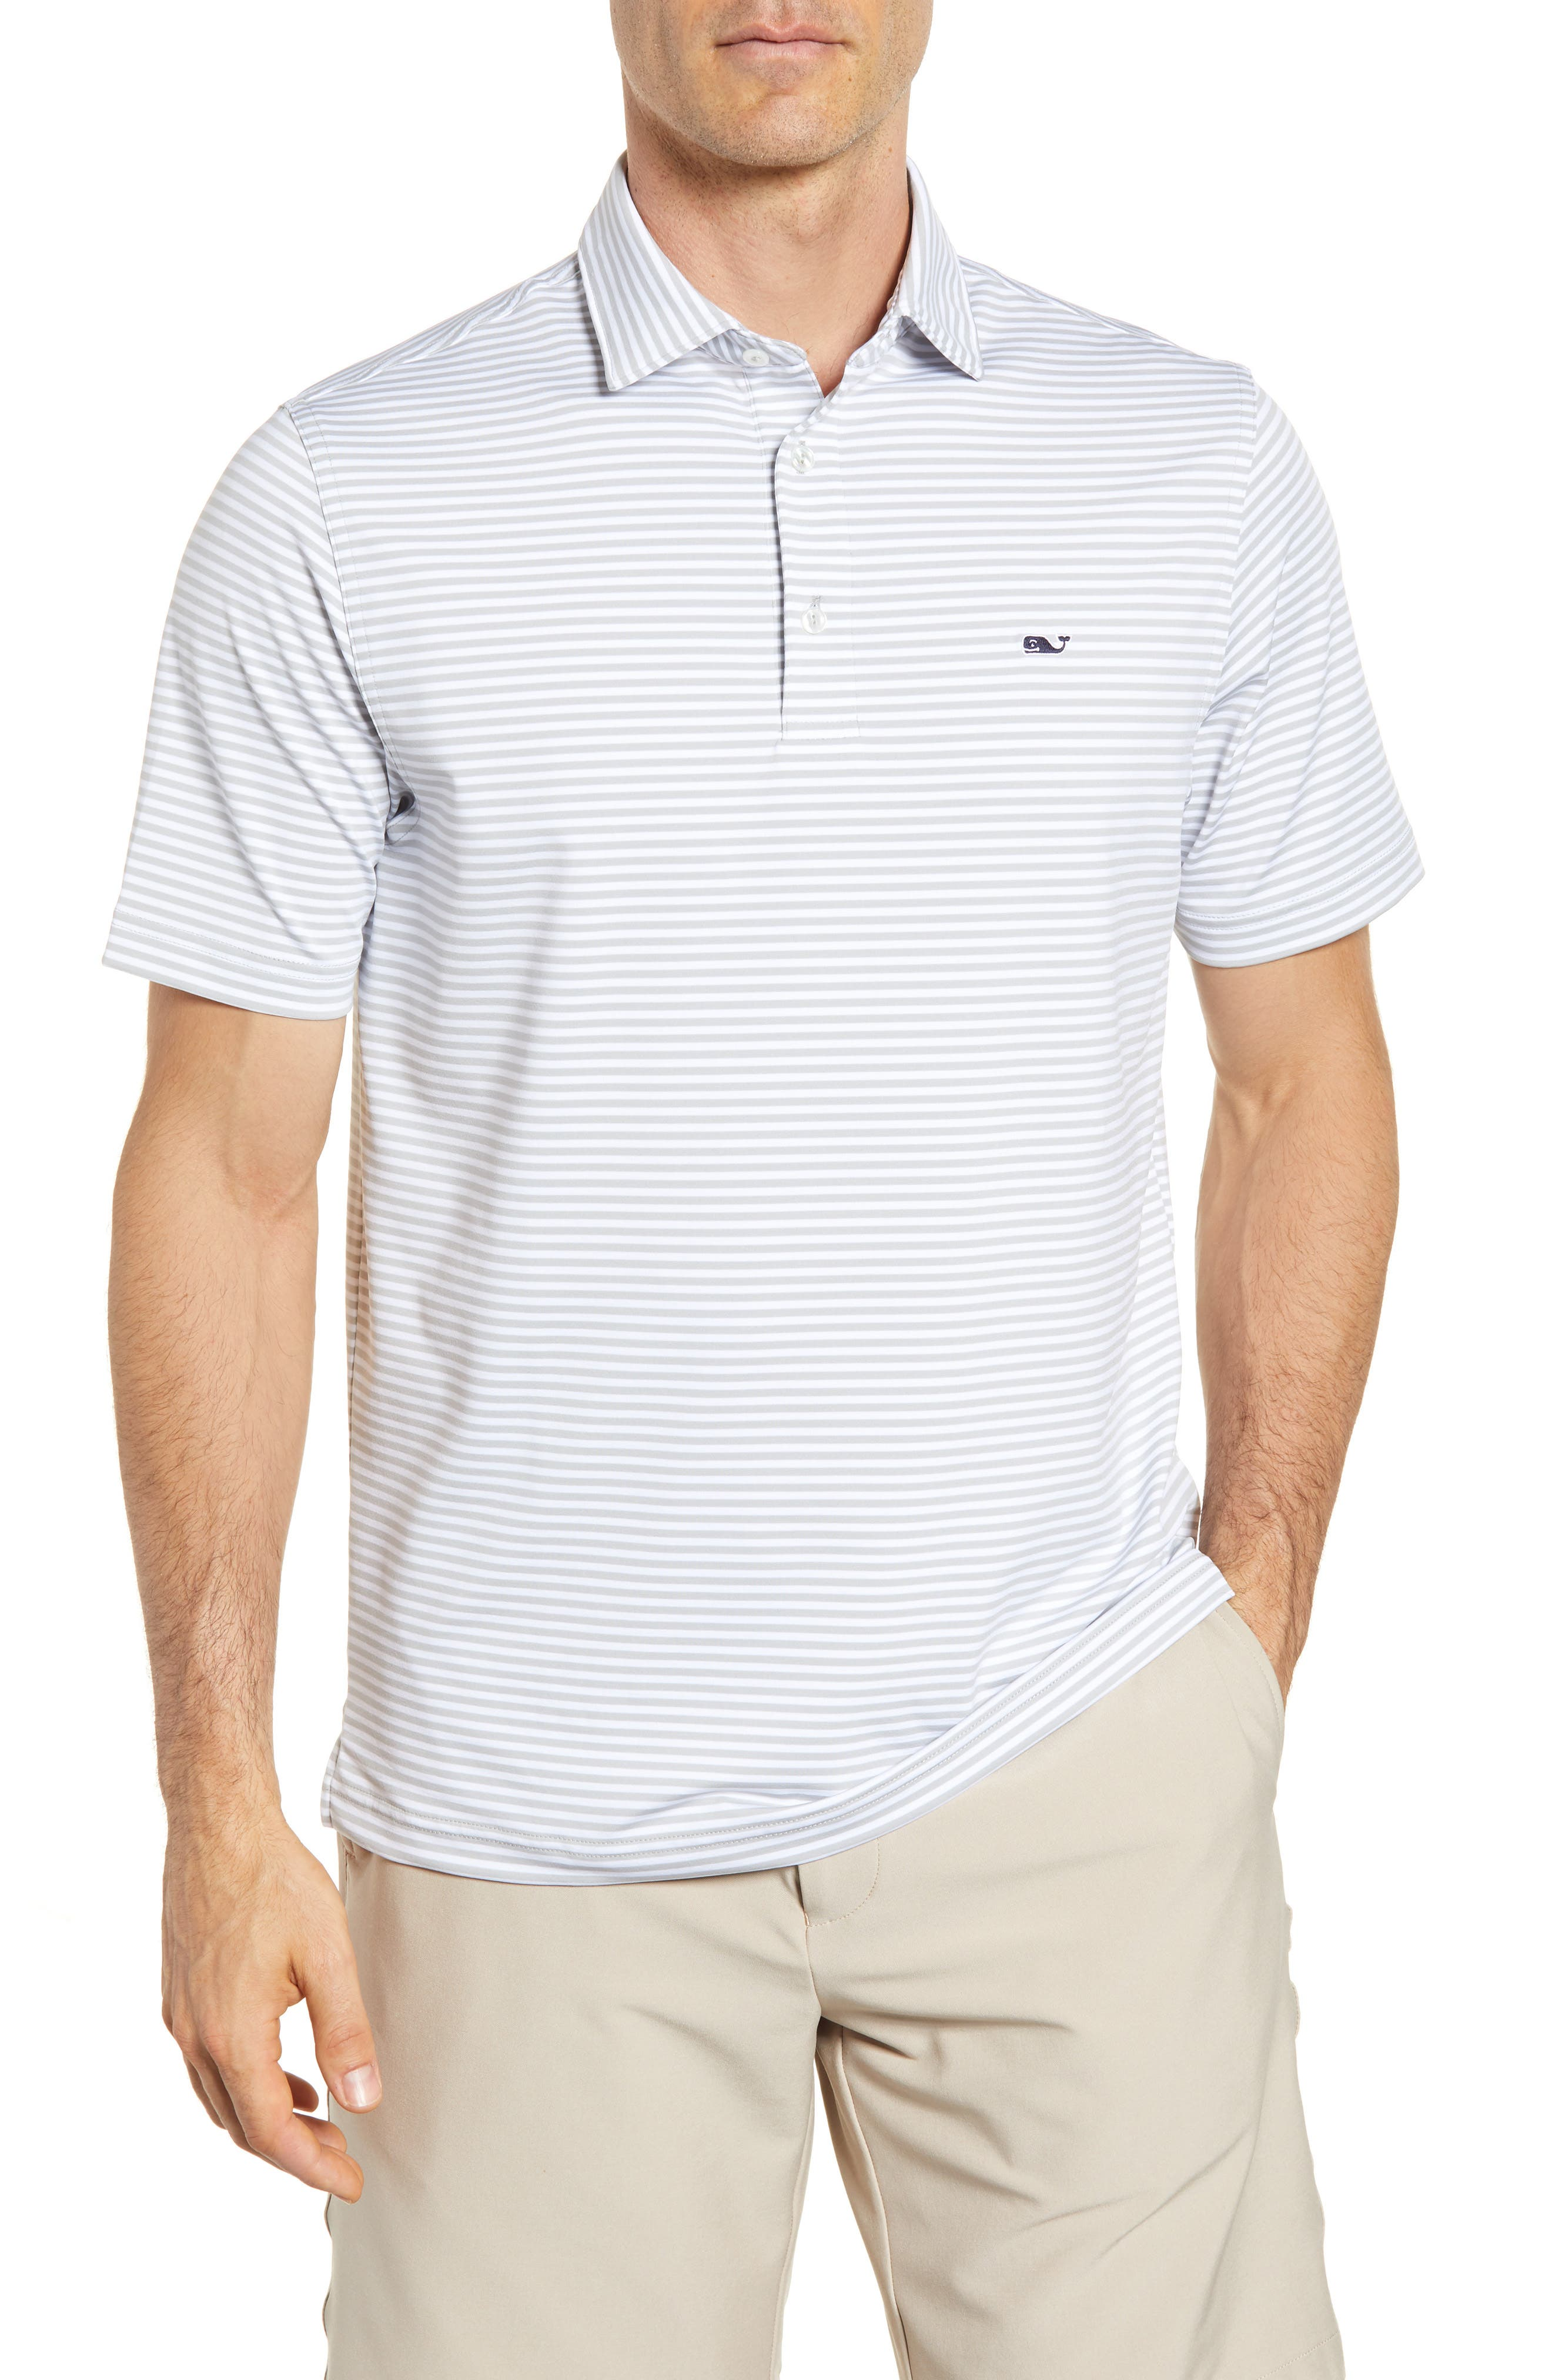 vineyard vines Color to White Feeder Stripe Polo